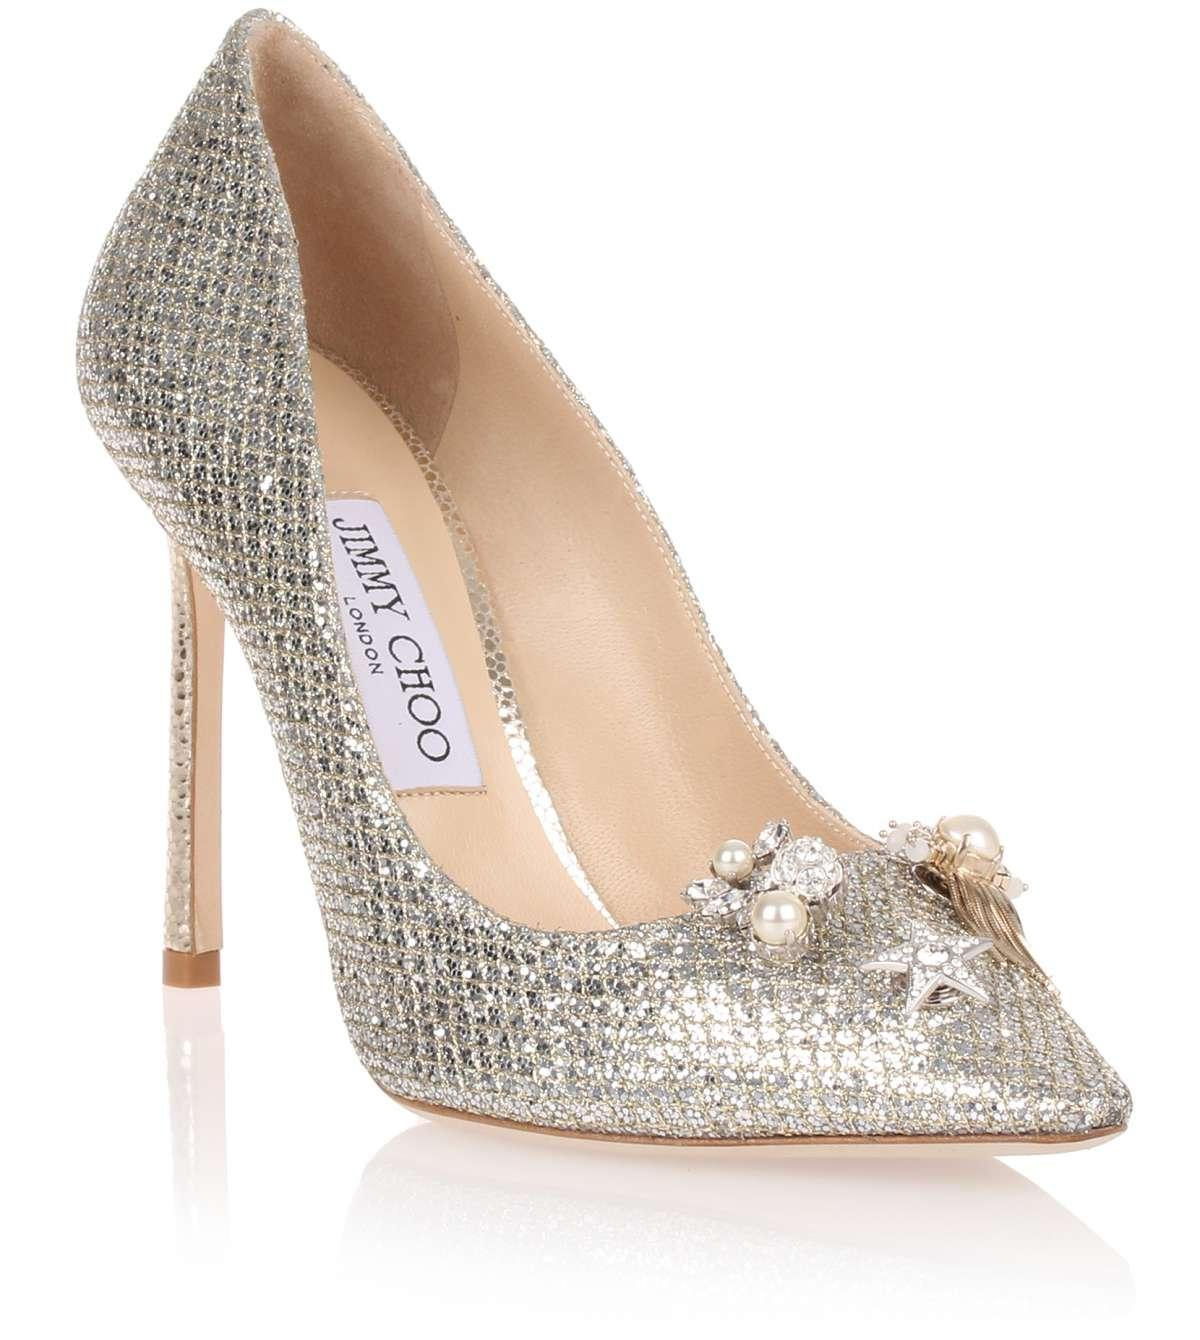 Jimmy choo Jasmine 100 pumps vRmj2P3UfZ